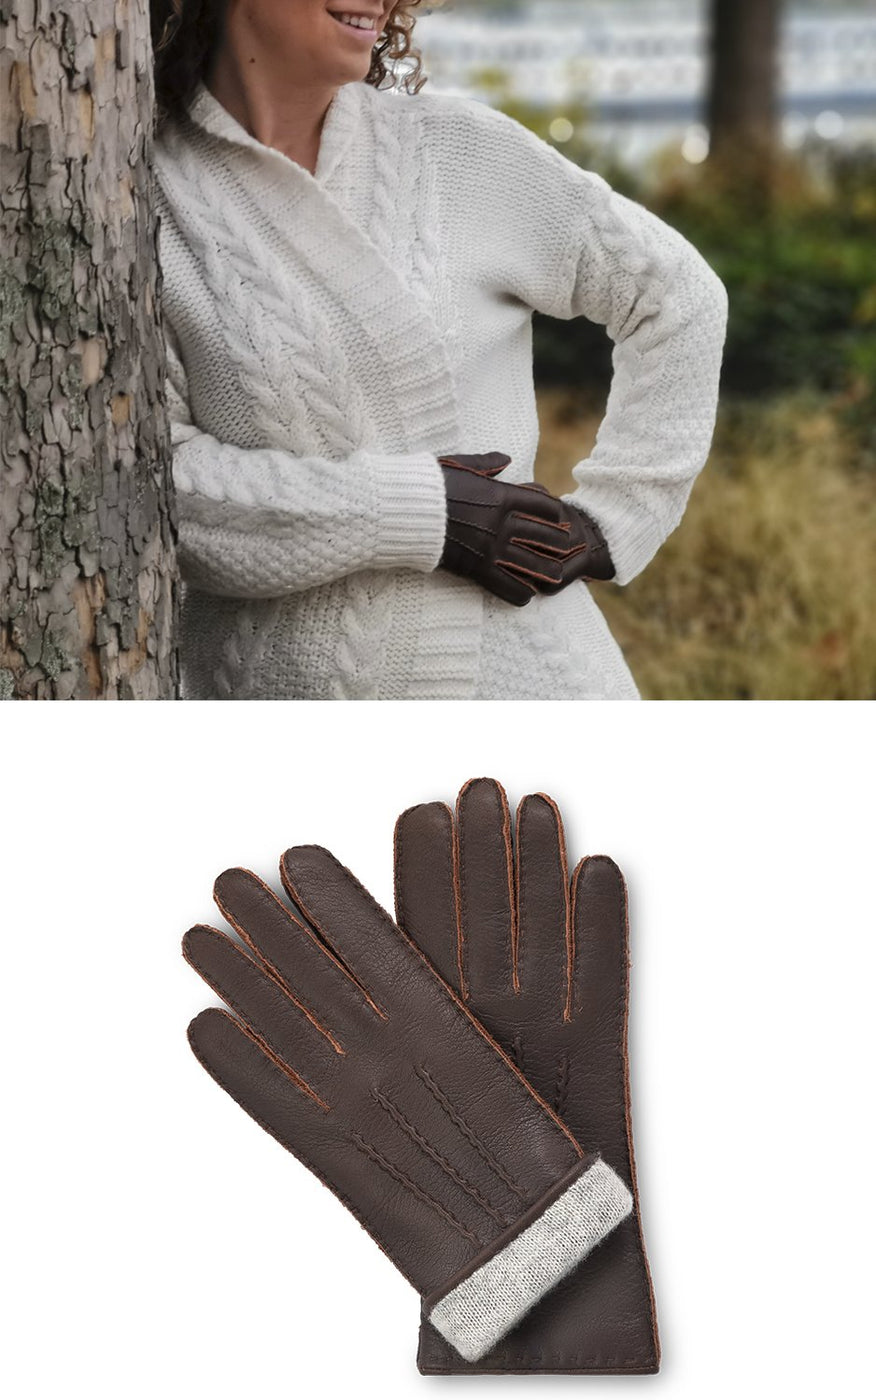 Woman in white cardigan wears dark brown leather gloves